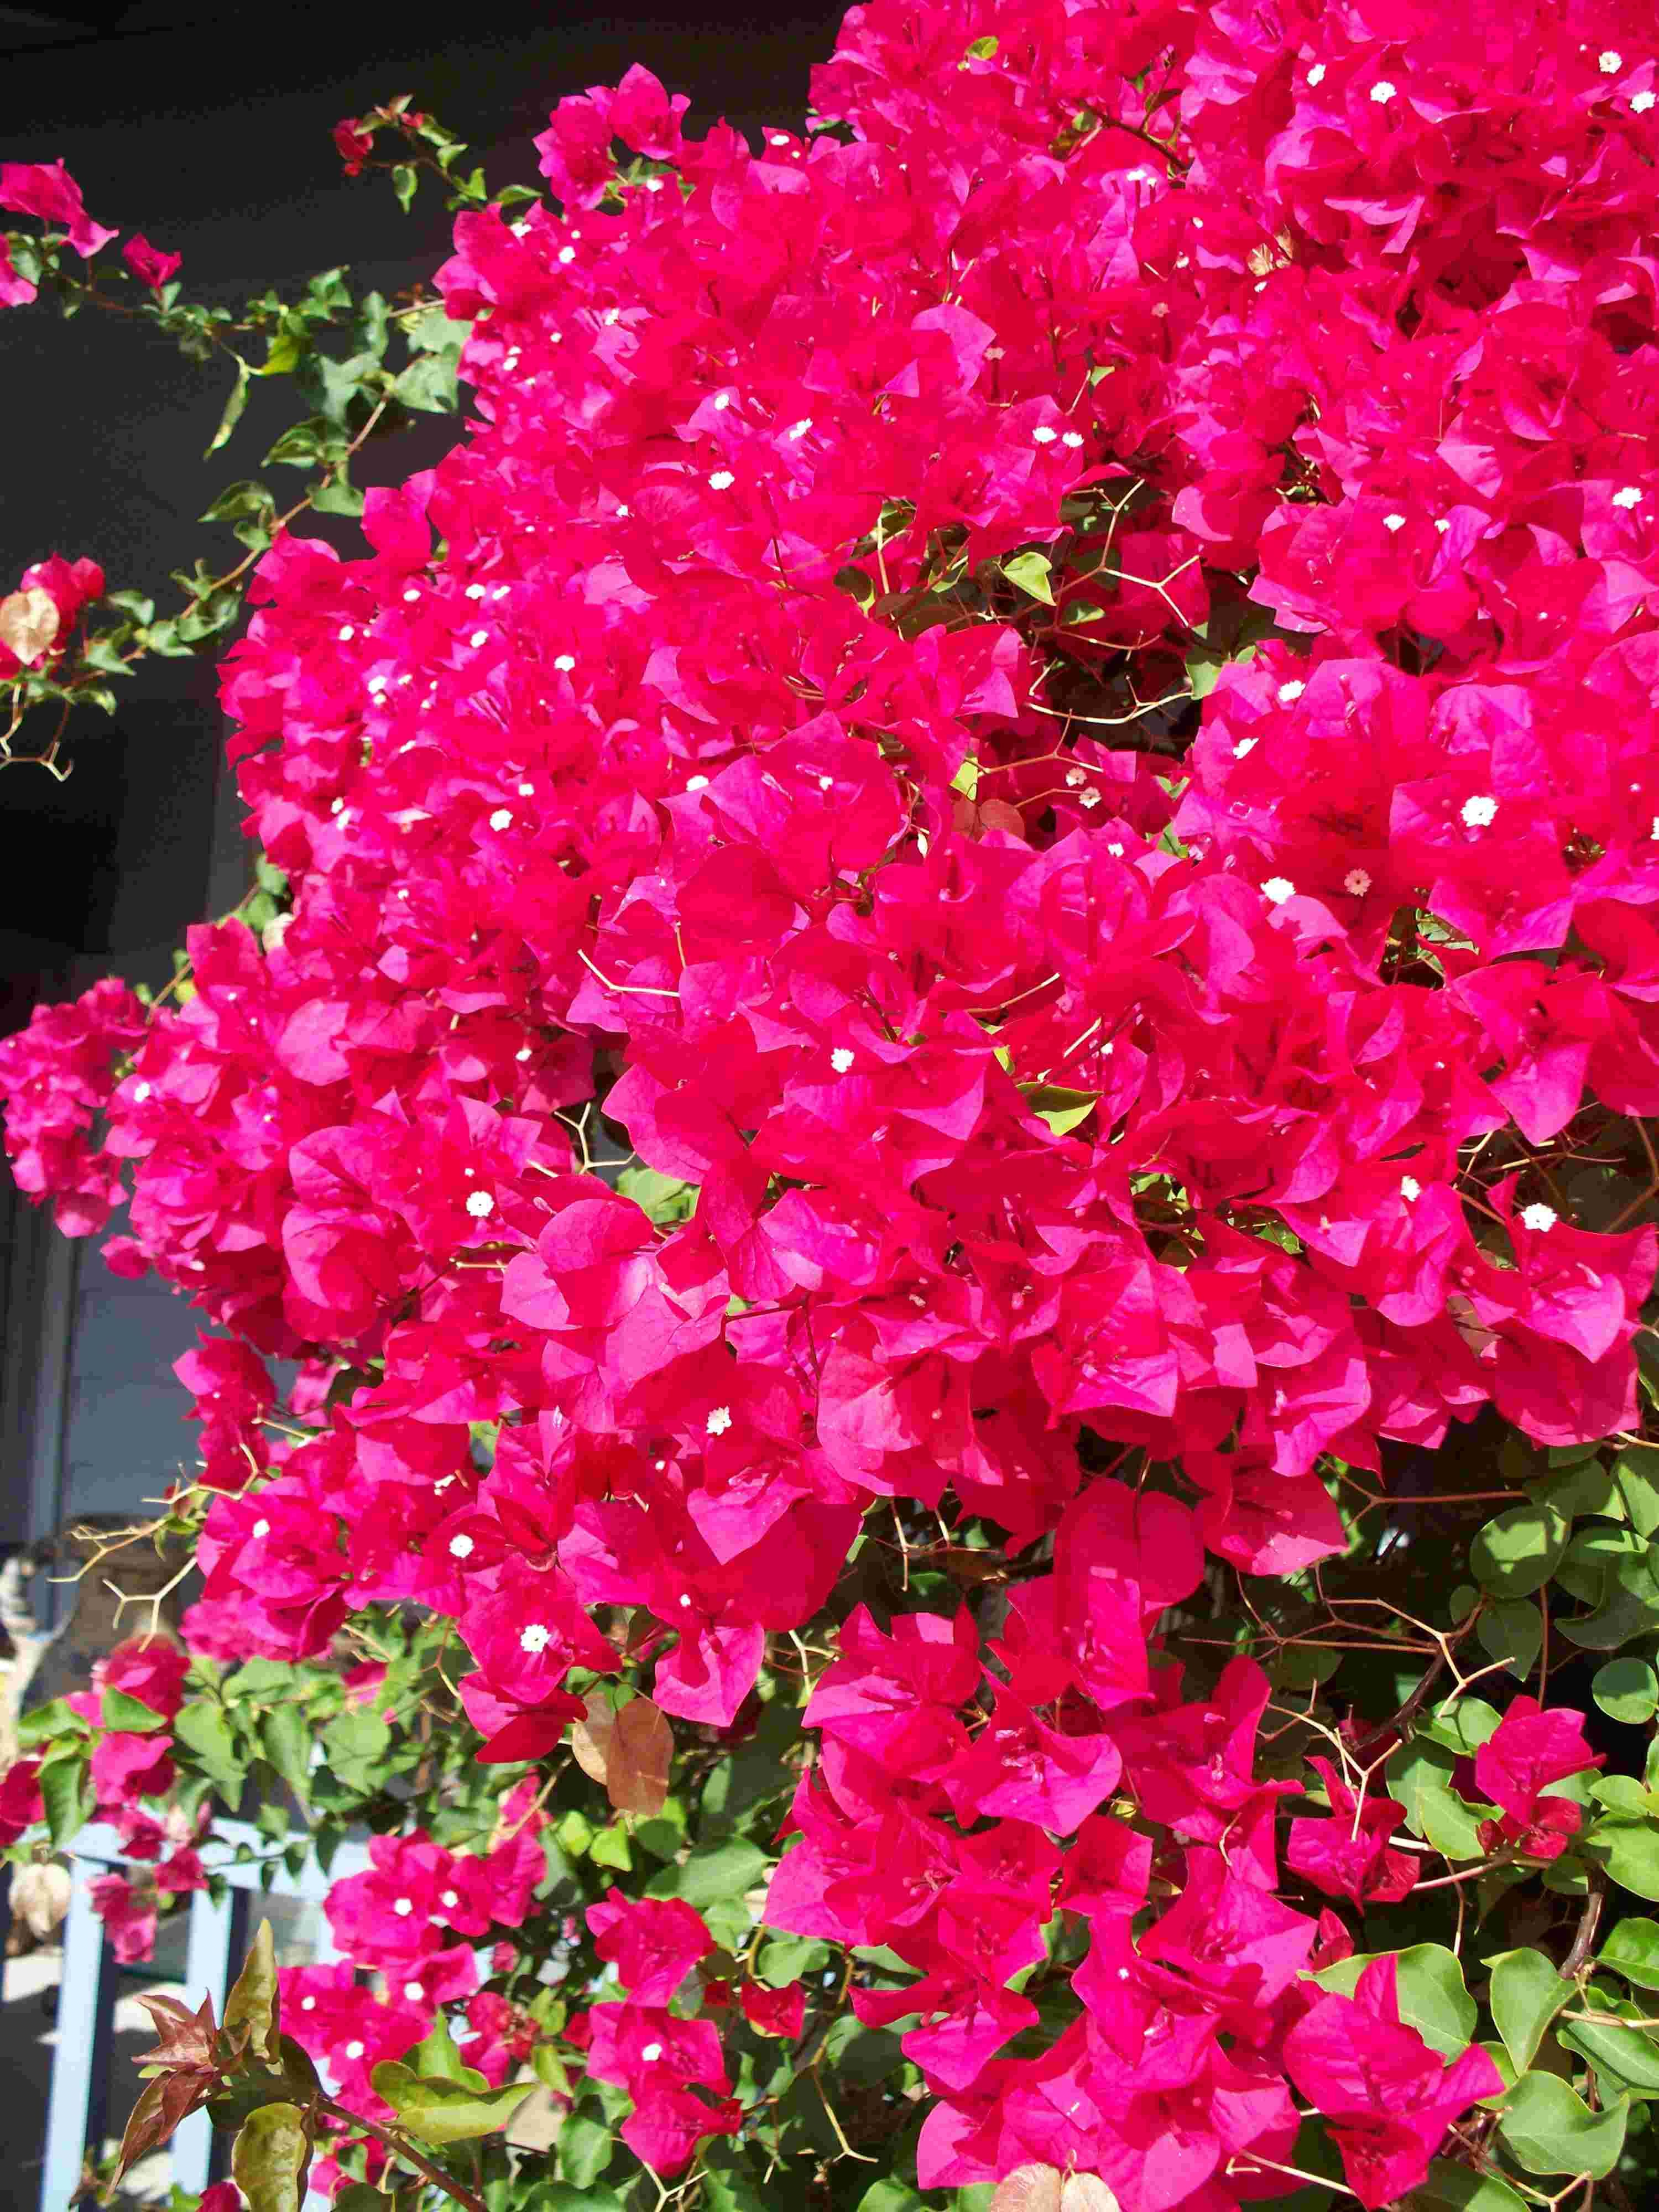 Bougainvillea Winter Care What To Do With A Bougainvillea: If I Ever Live In A Warm Climate Again, I